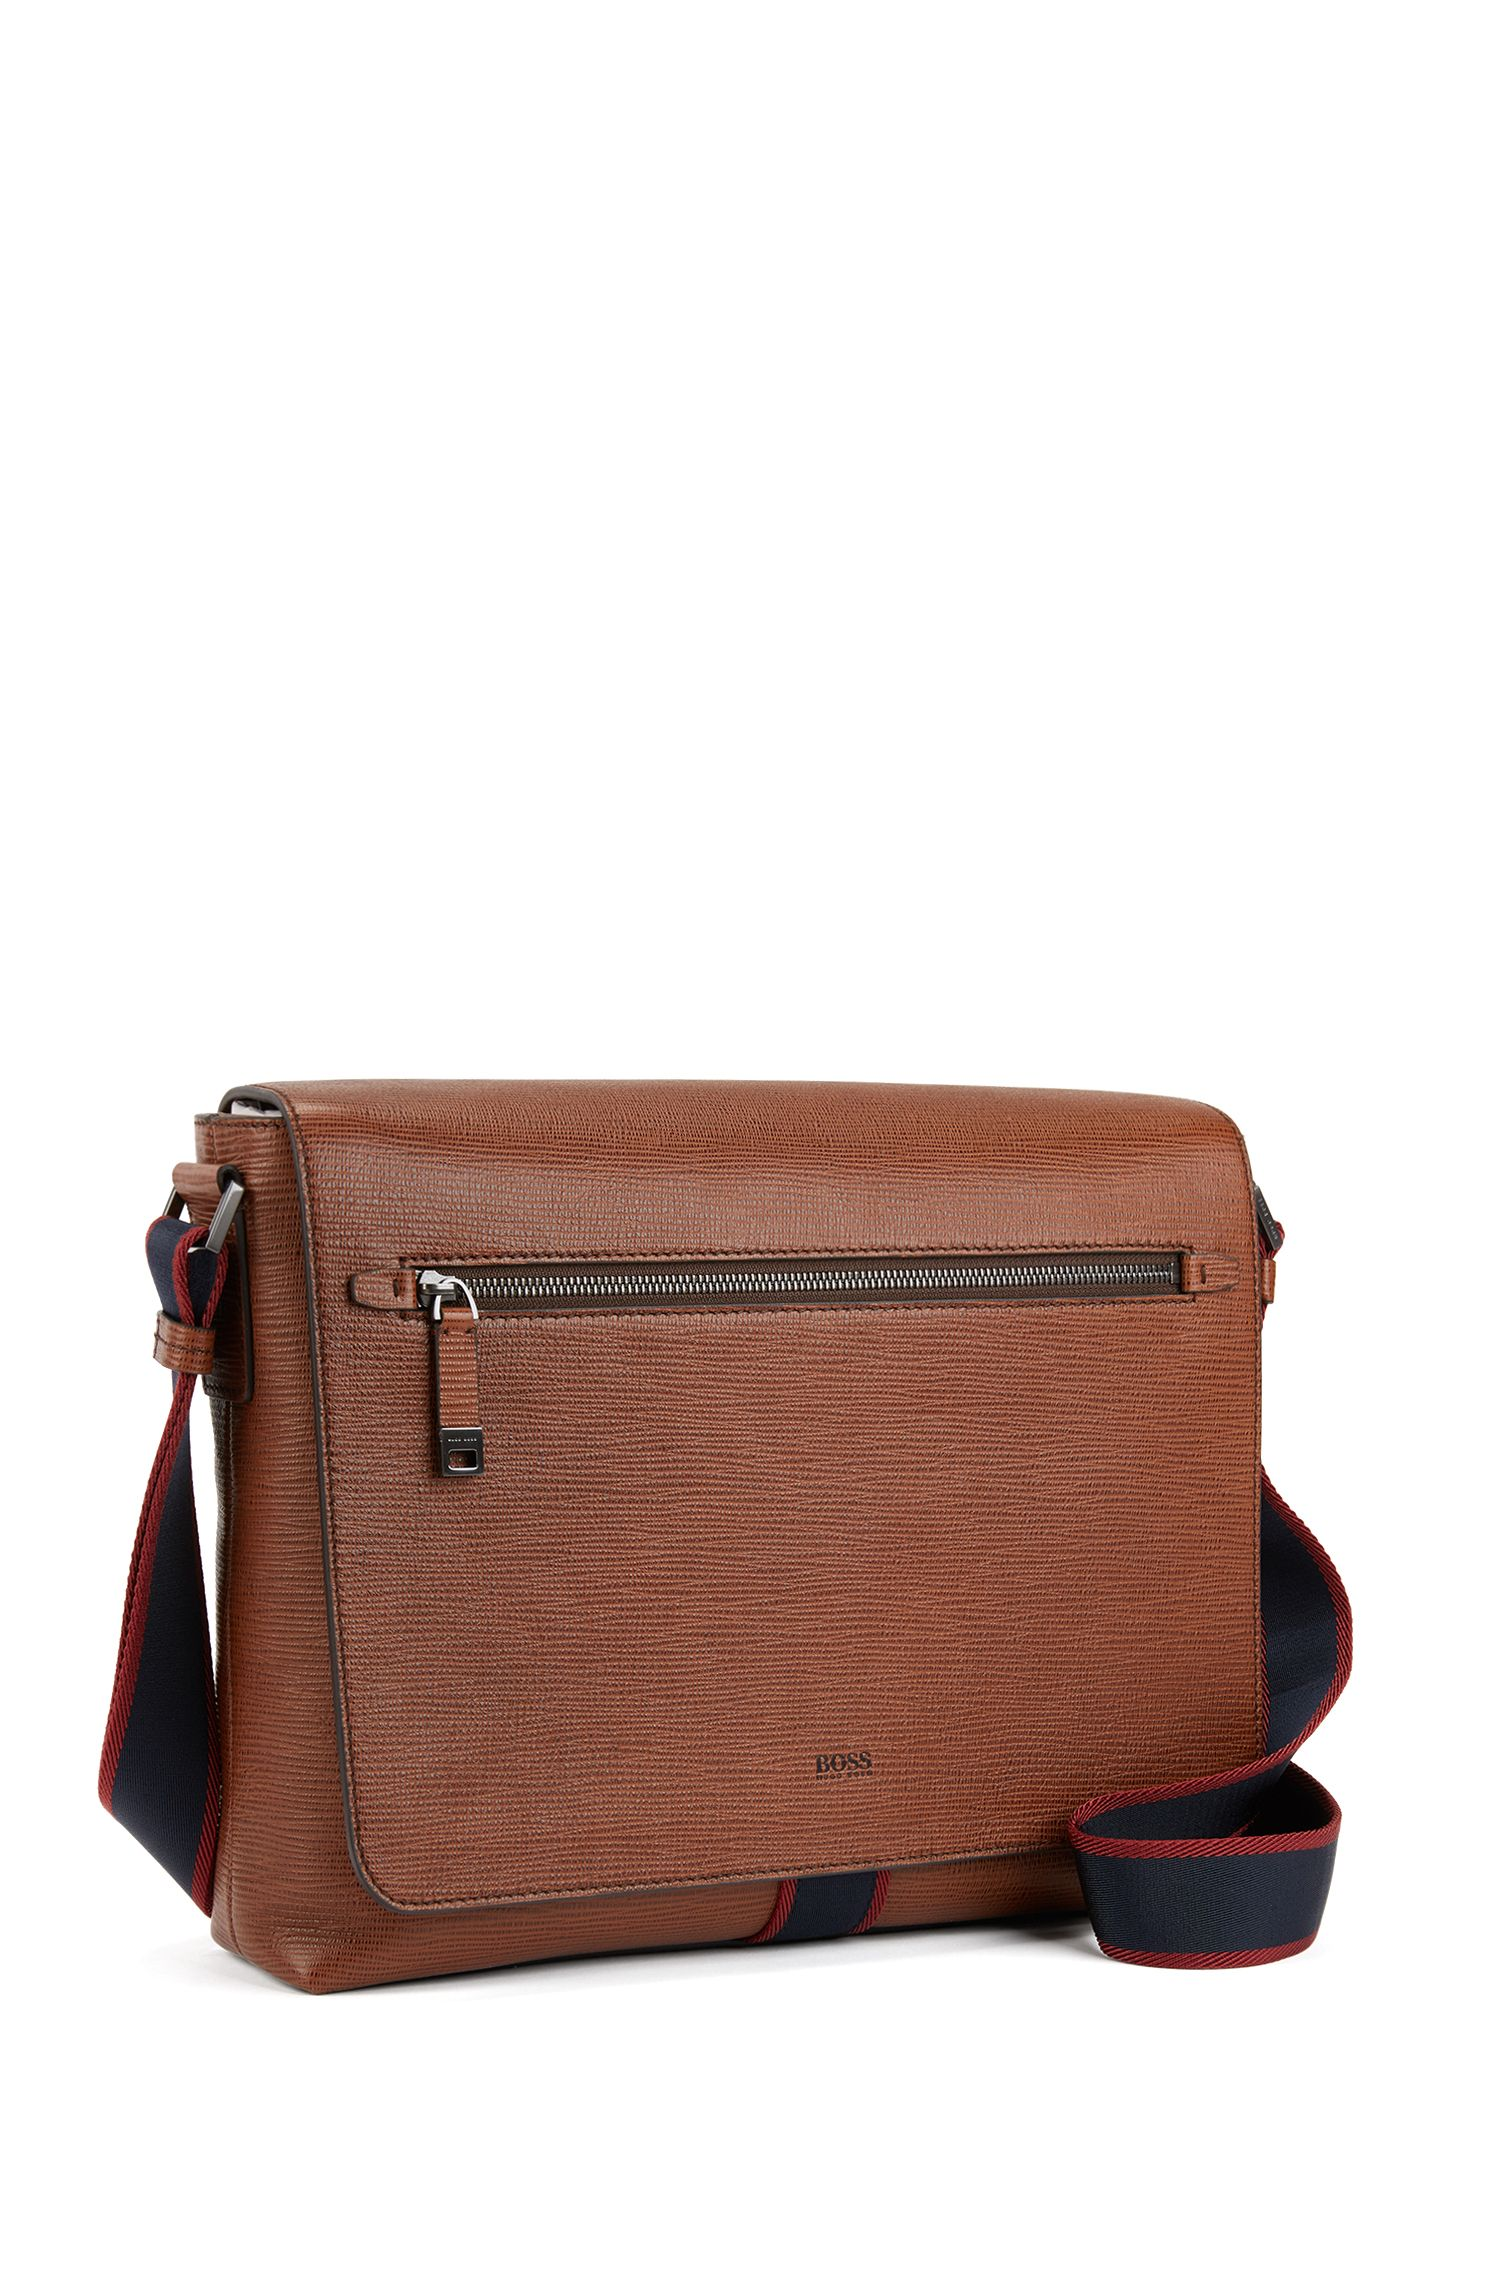 Printed Italian calf-leather messenger bag with webbing detail